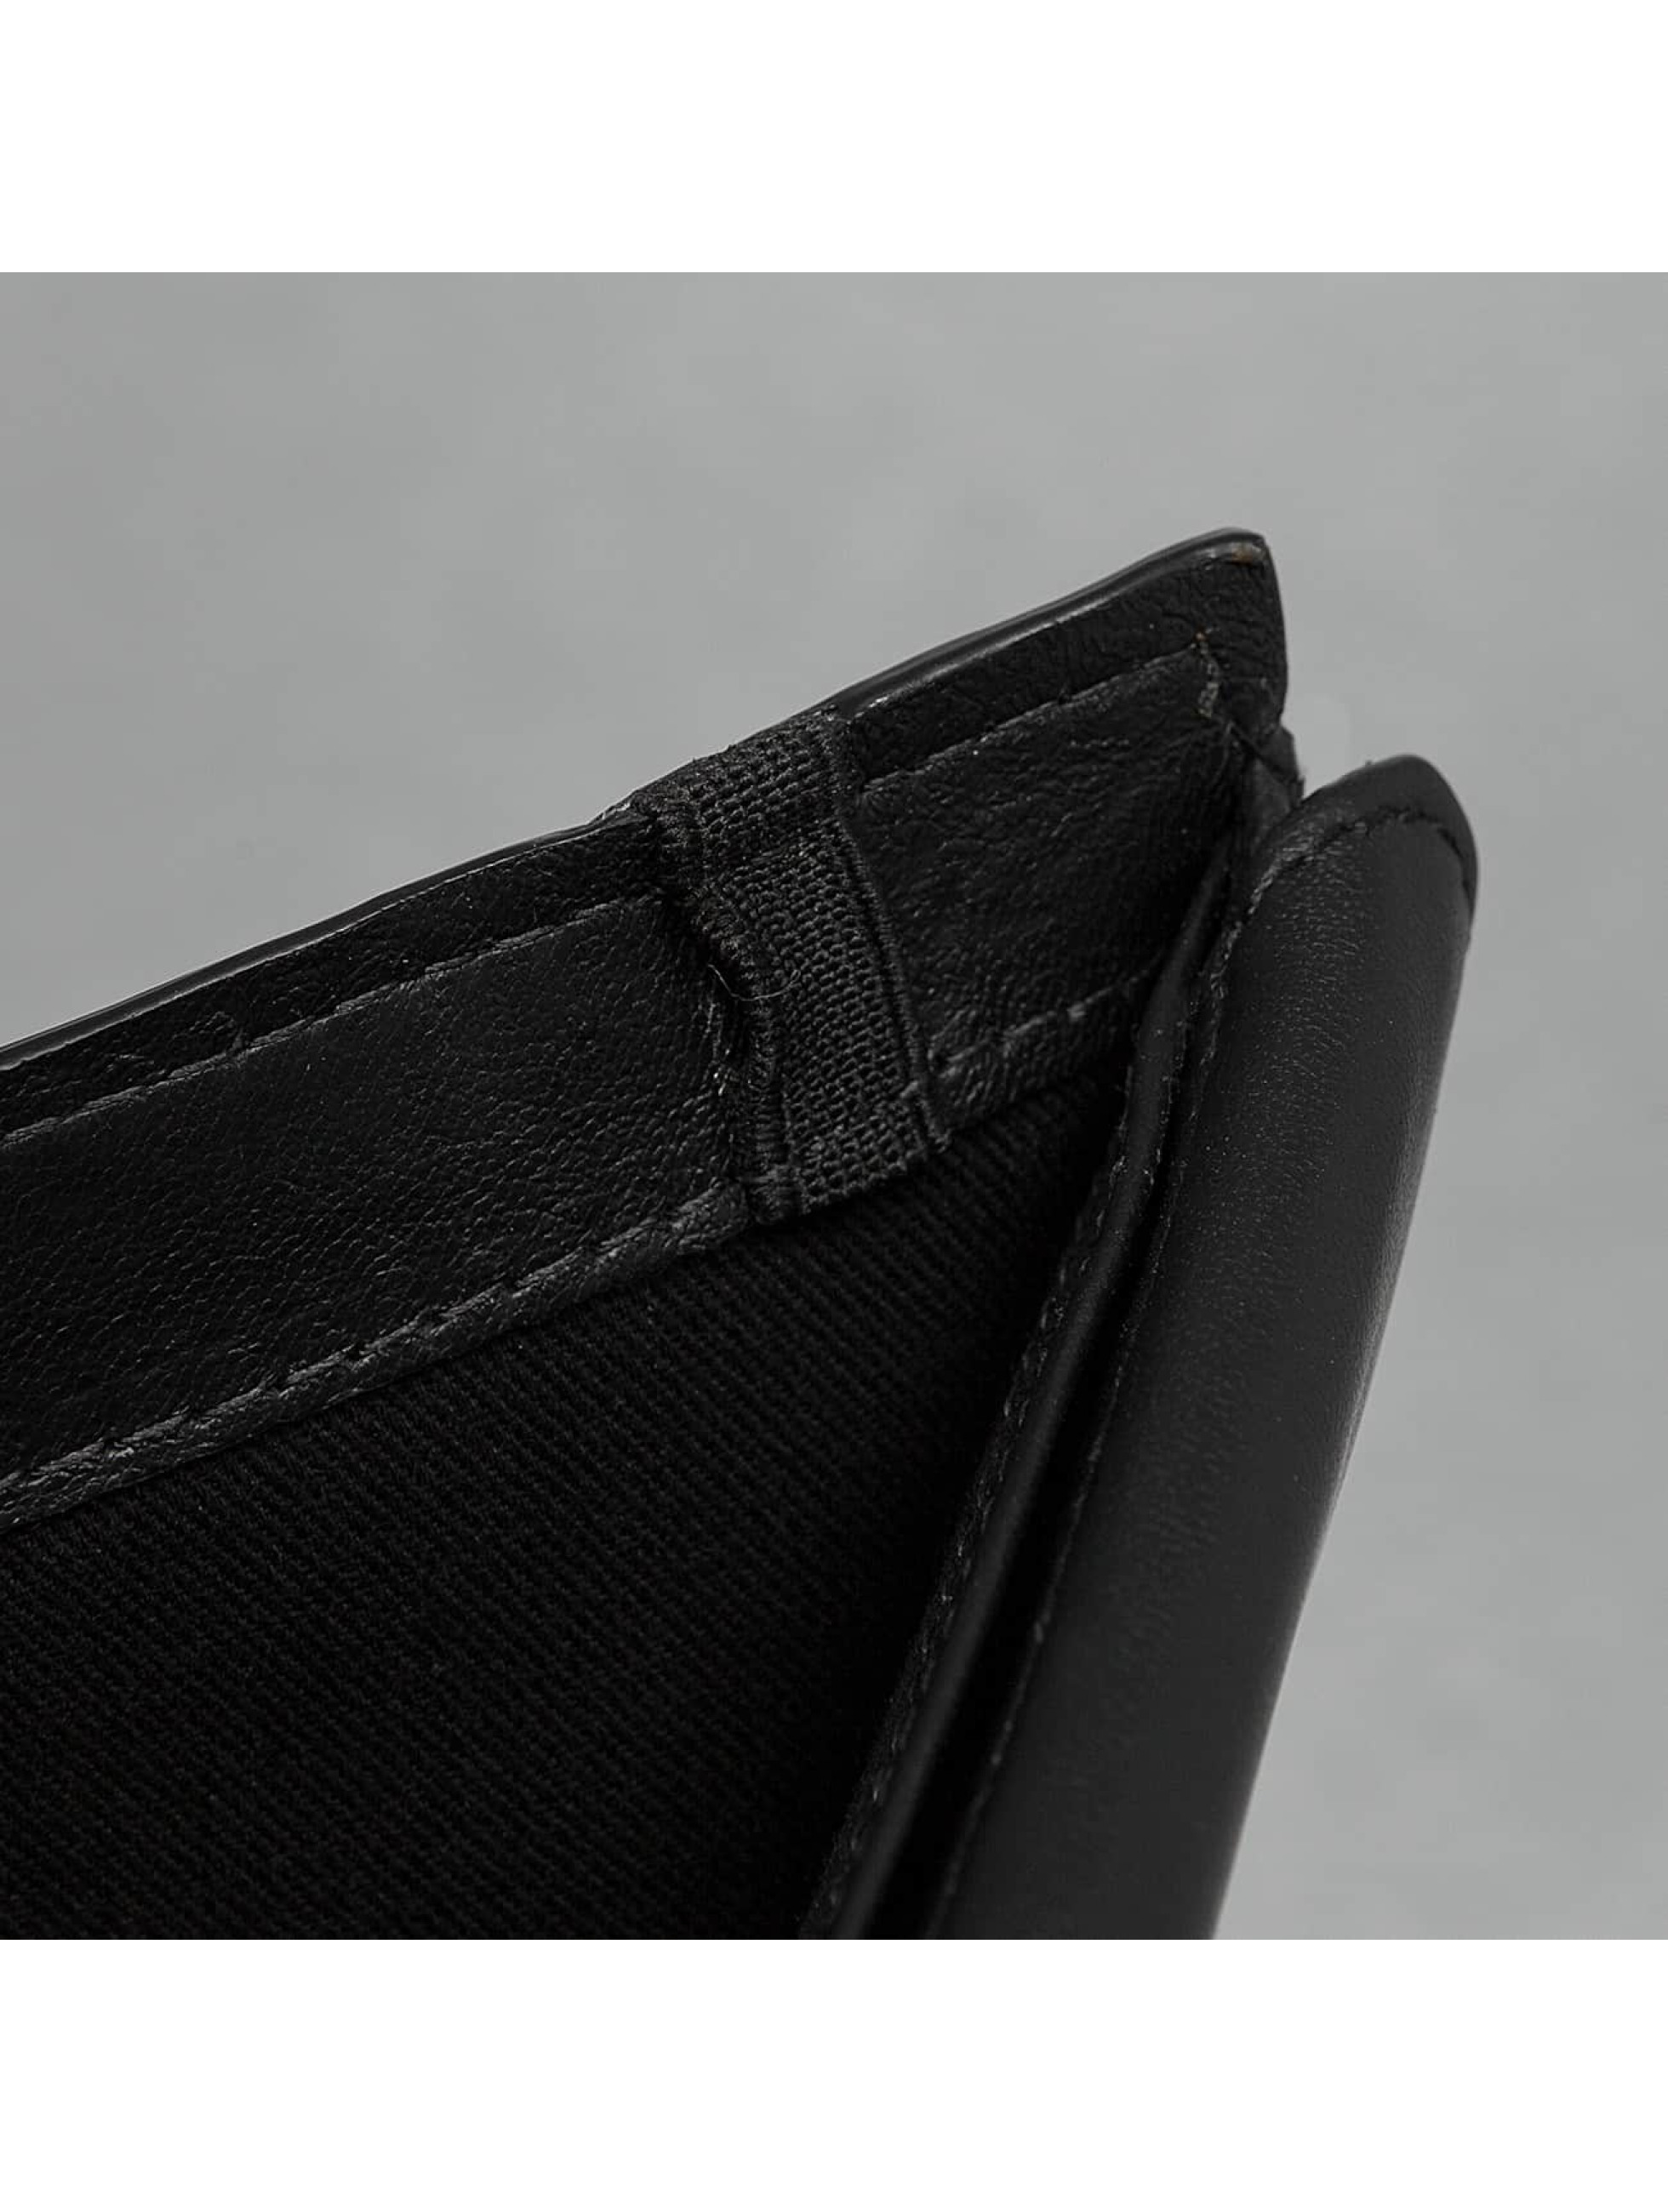 G-Star Wallet Zioks black